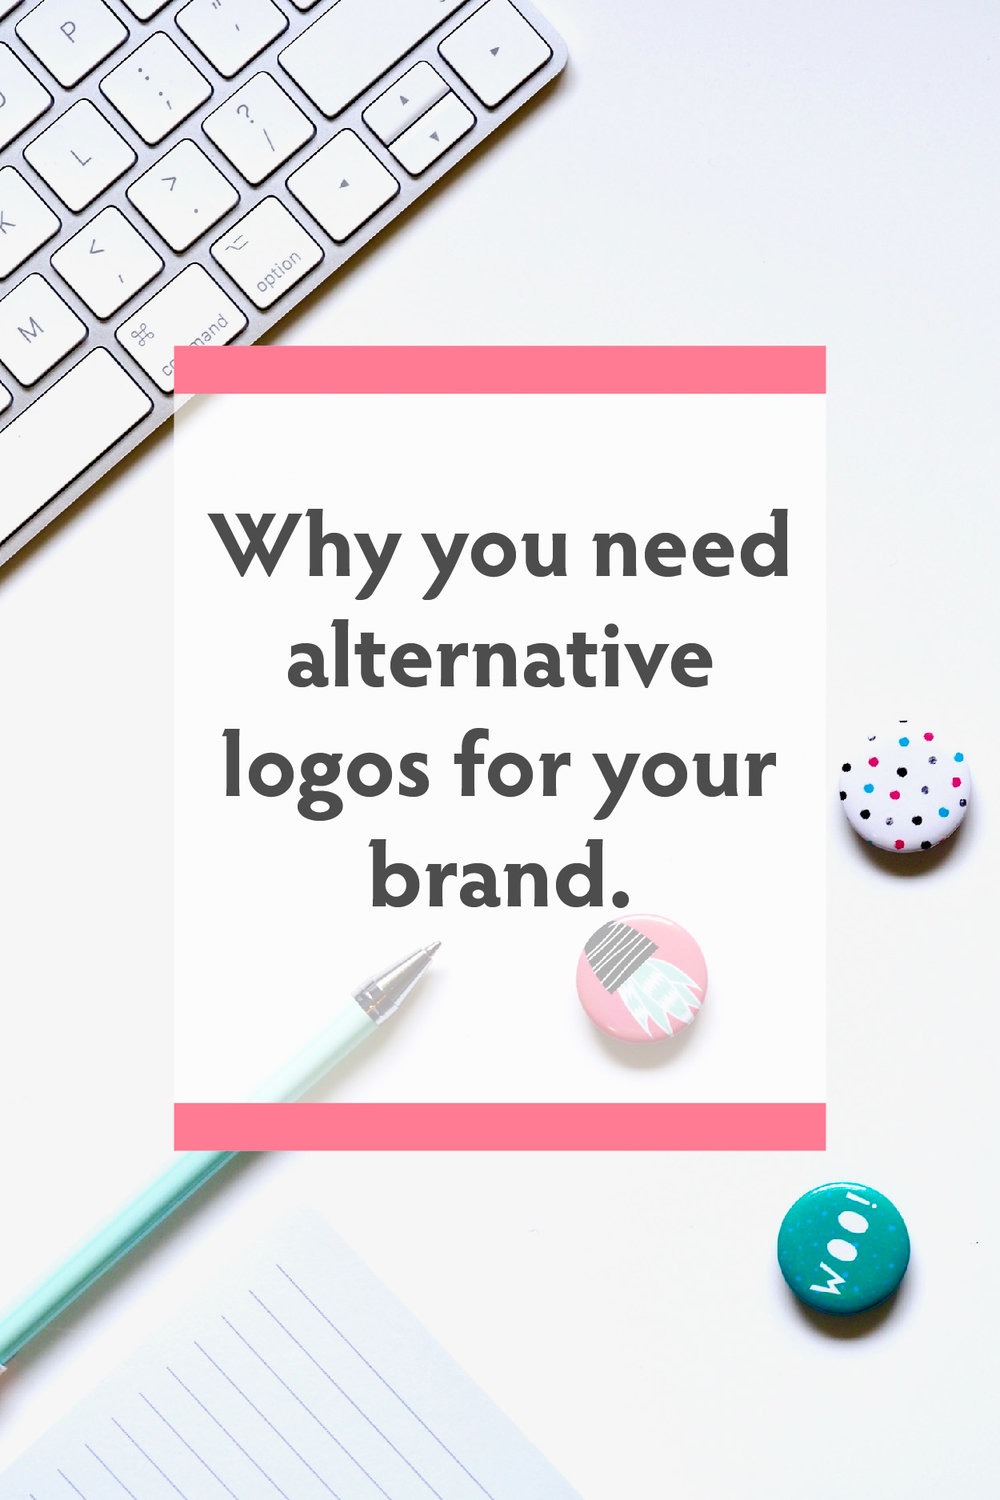 Why you need alternative logos for your brand.jpg